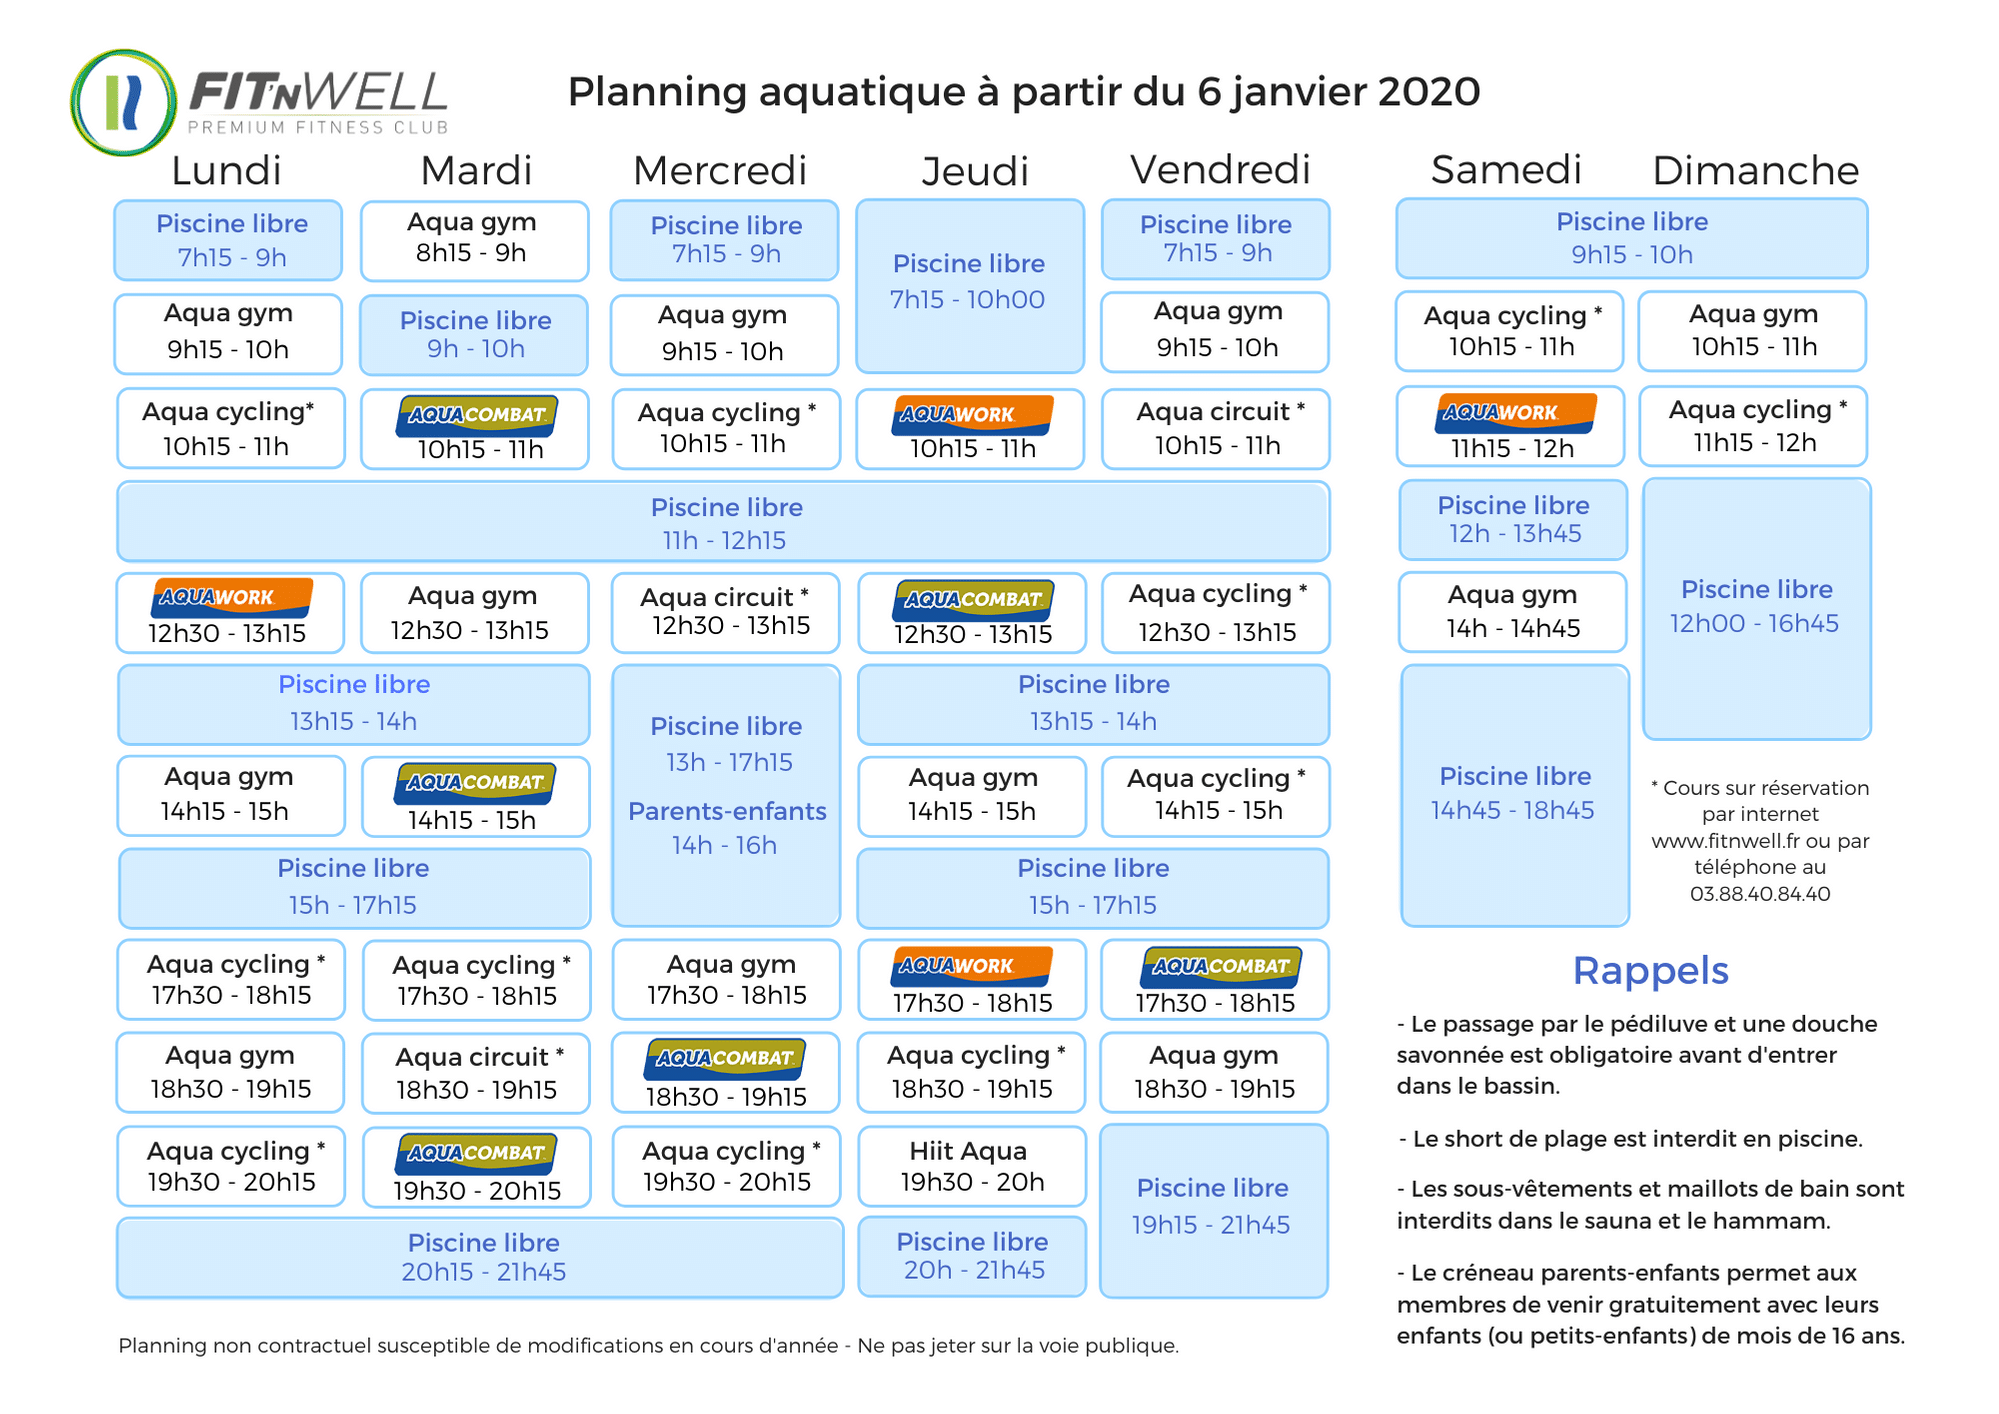 copie-de-copie-de-planning-sept-2019